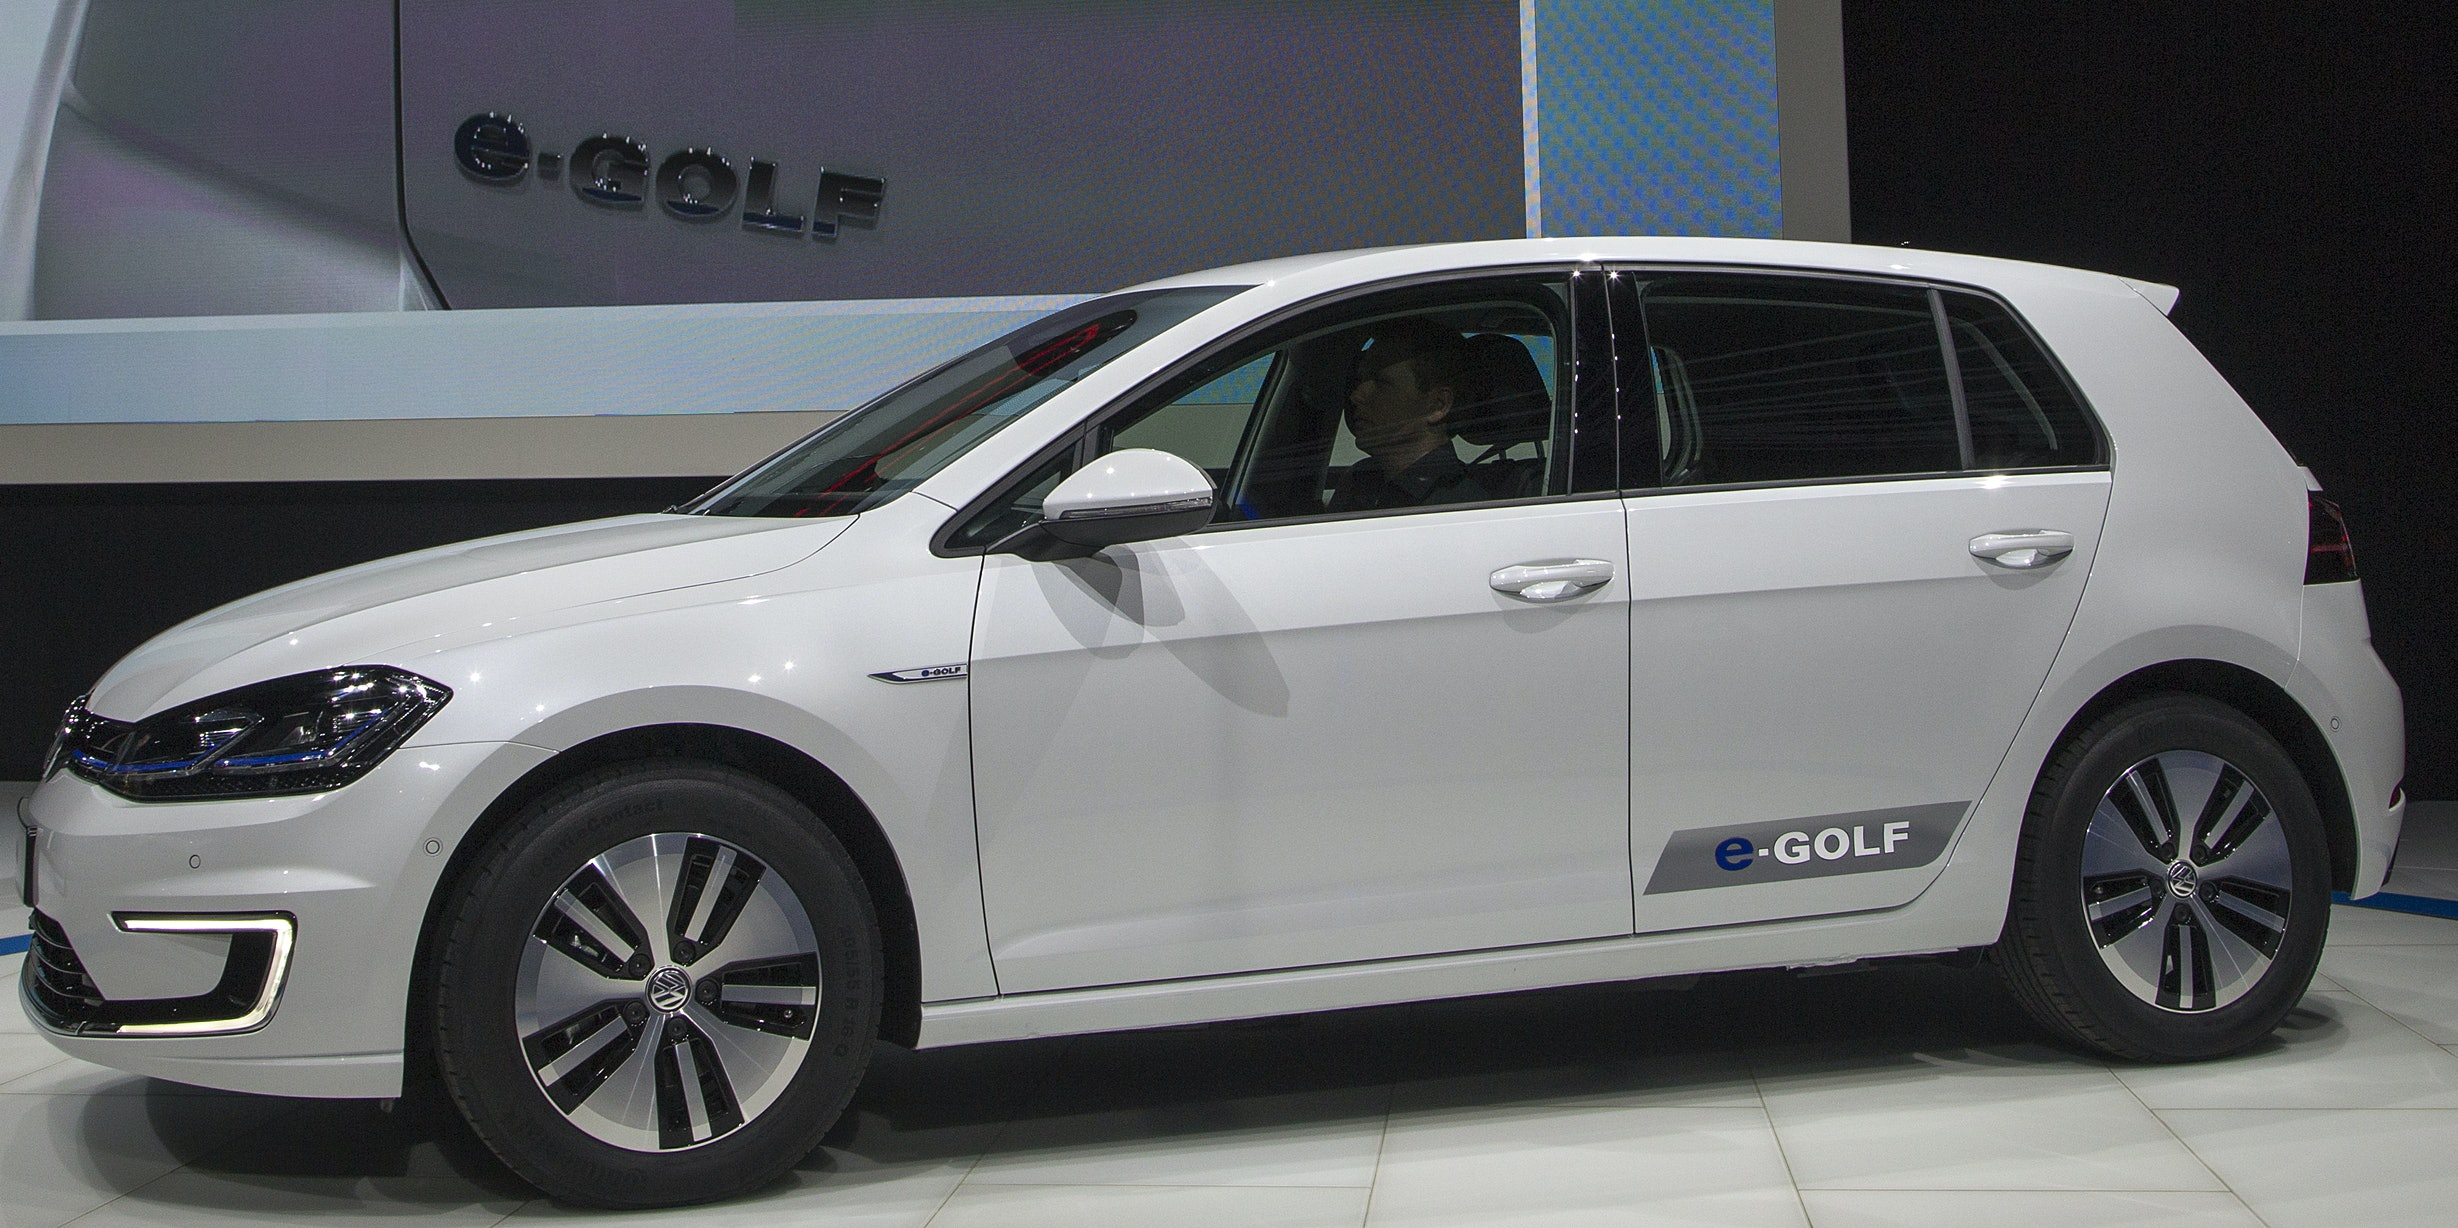 A Volkswagen e-Golf is presented during the four-day auto trade show AutoMobility LA at the Los Angeles Convention Center on November 17, 2016.